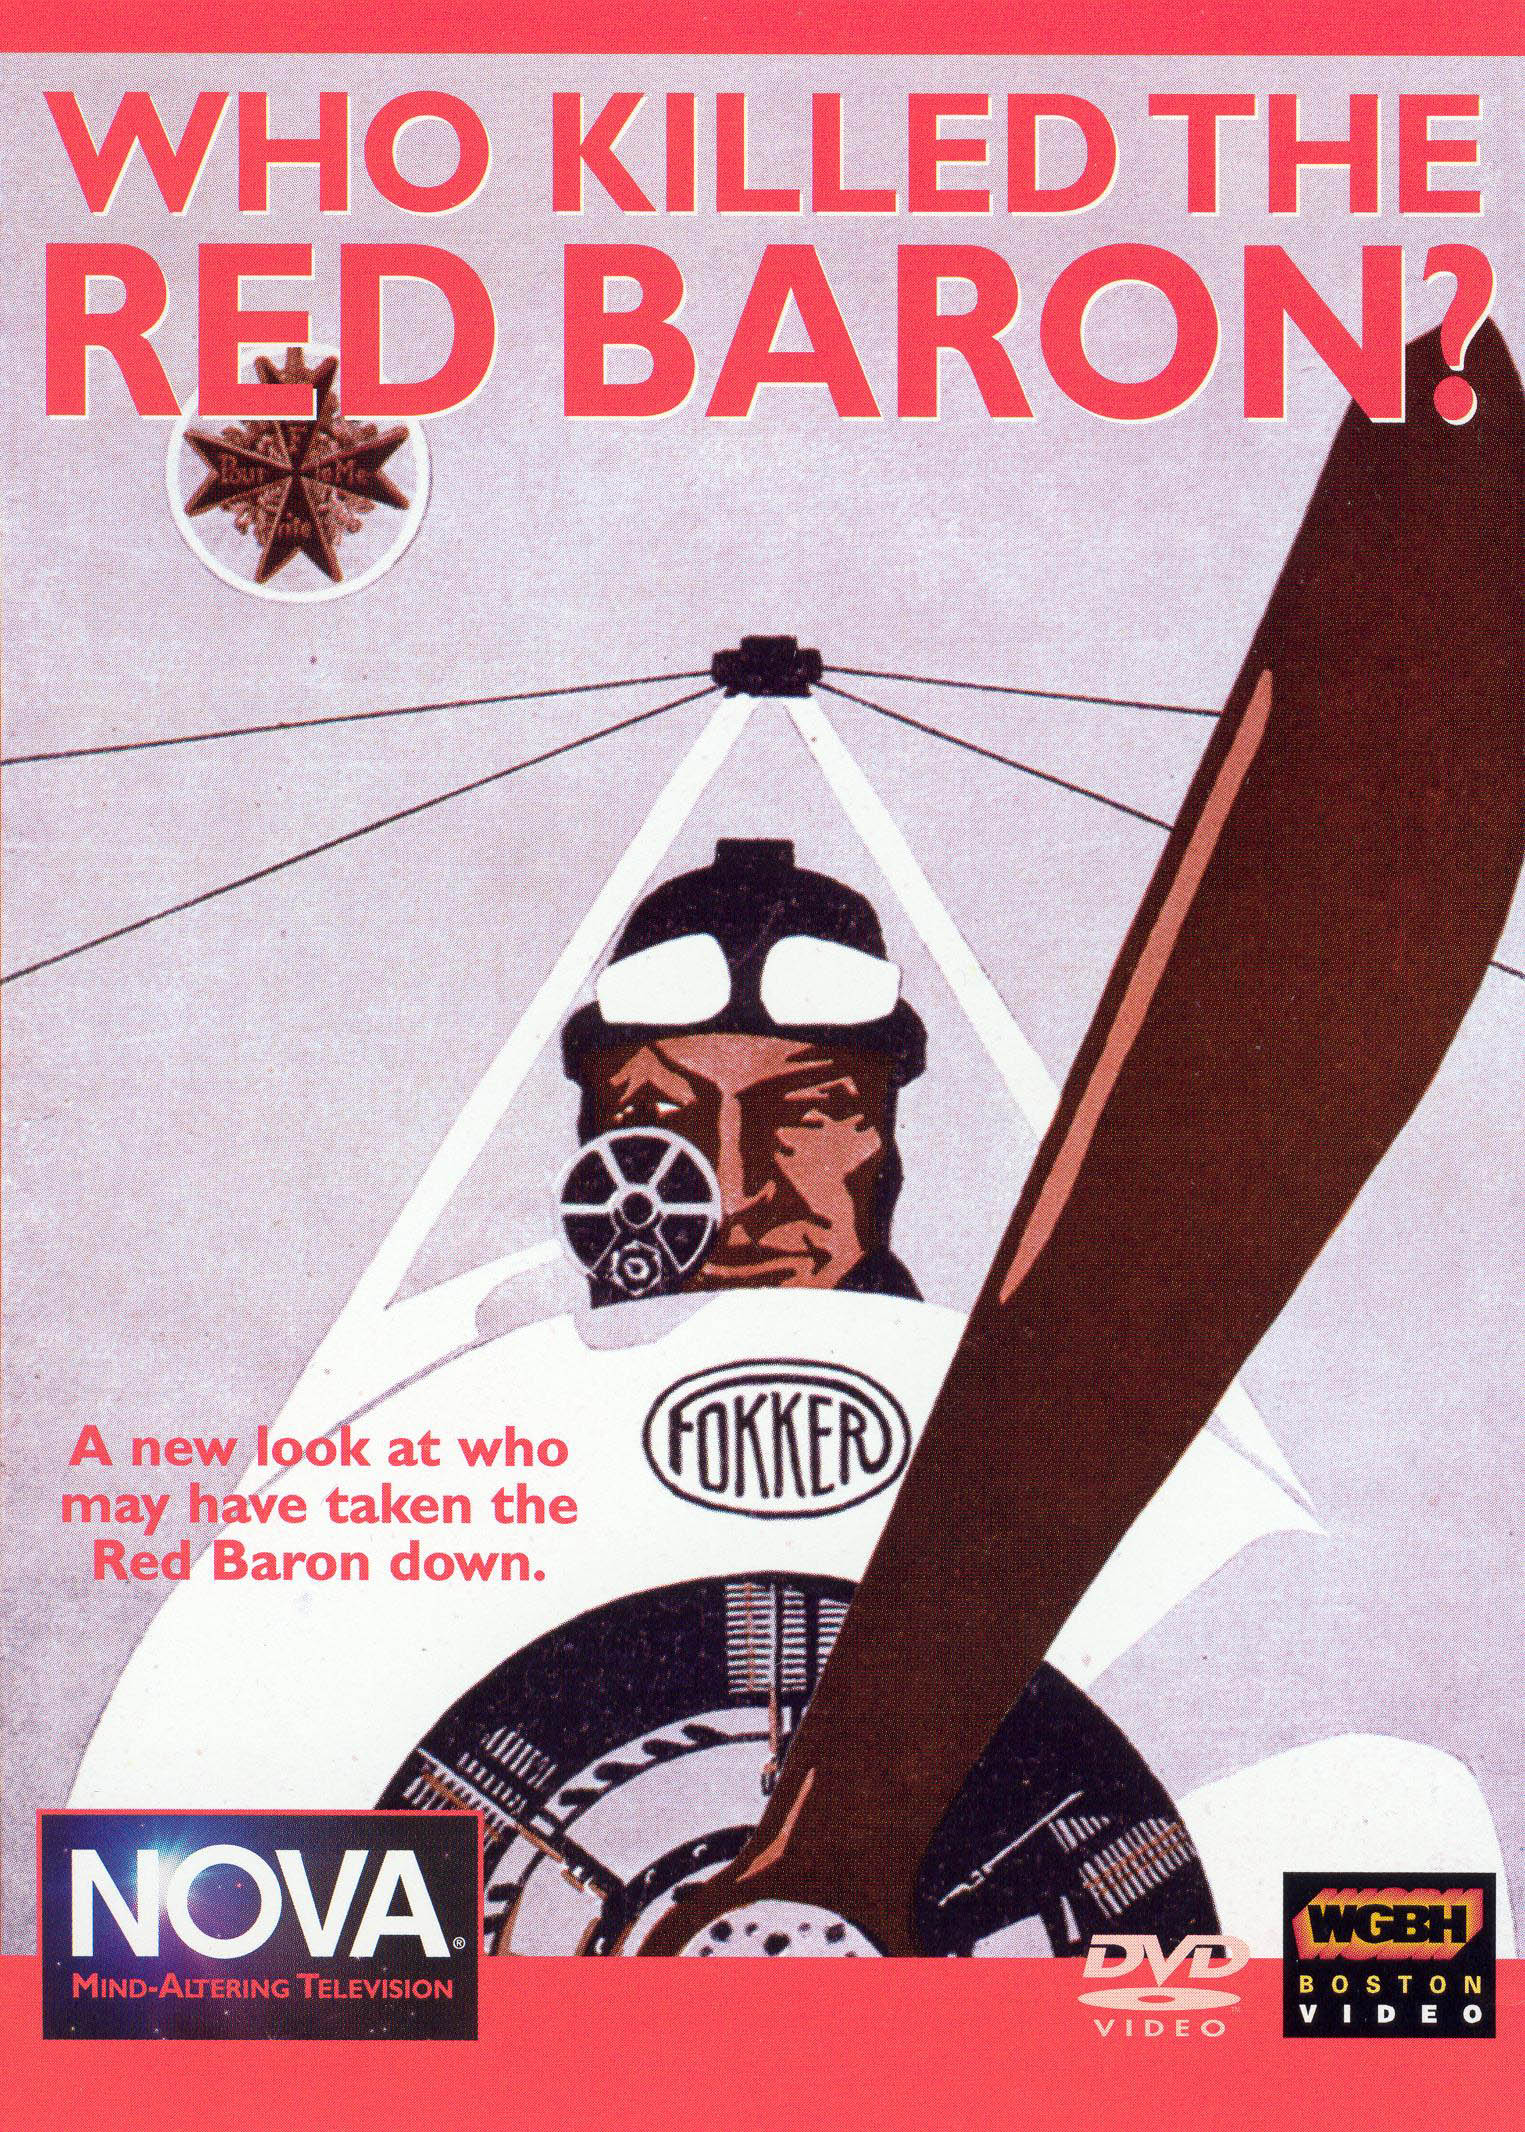 NOVA: Who Killed the Red Baron?